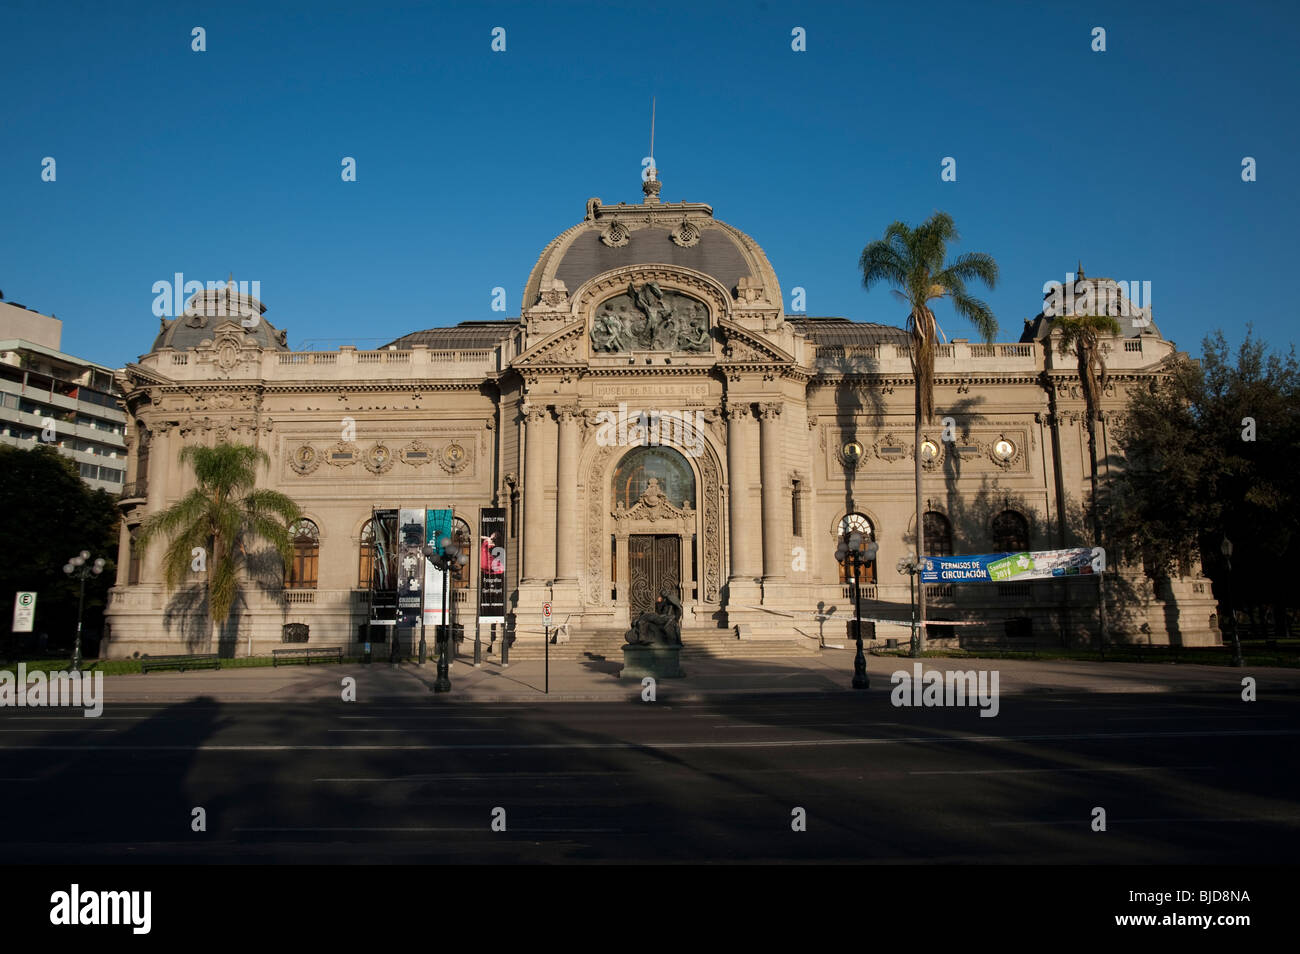 The National Museum of Fine Arts, located in Santiago, Chile - Stock Image